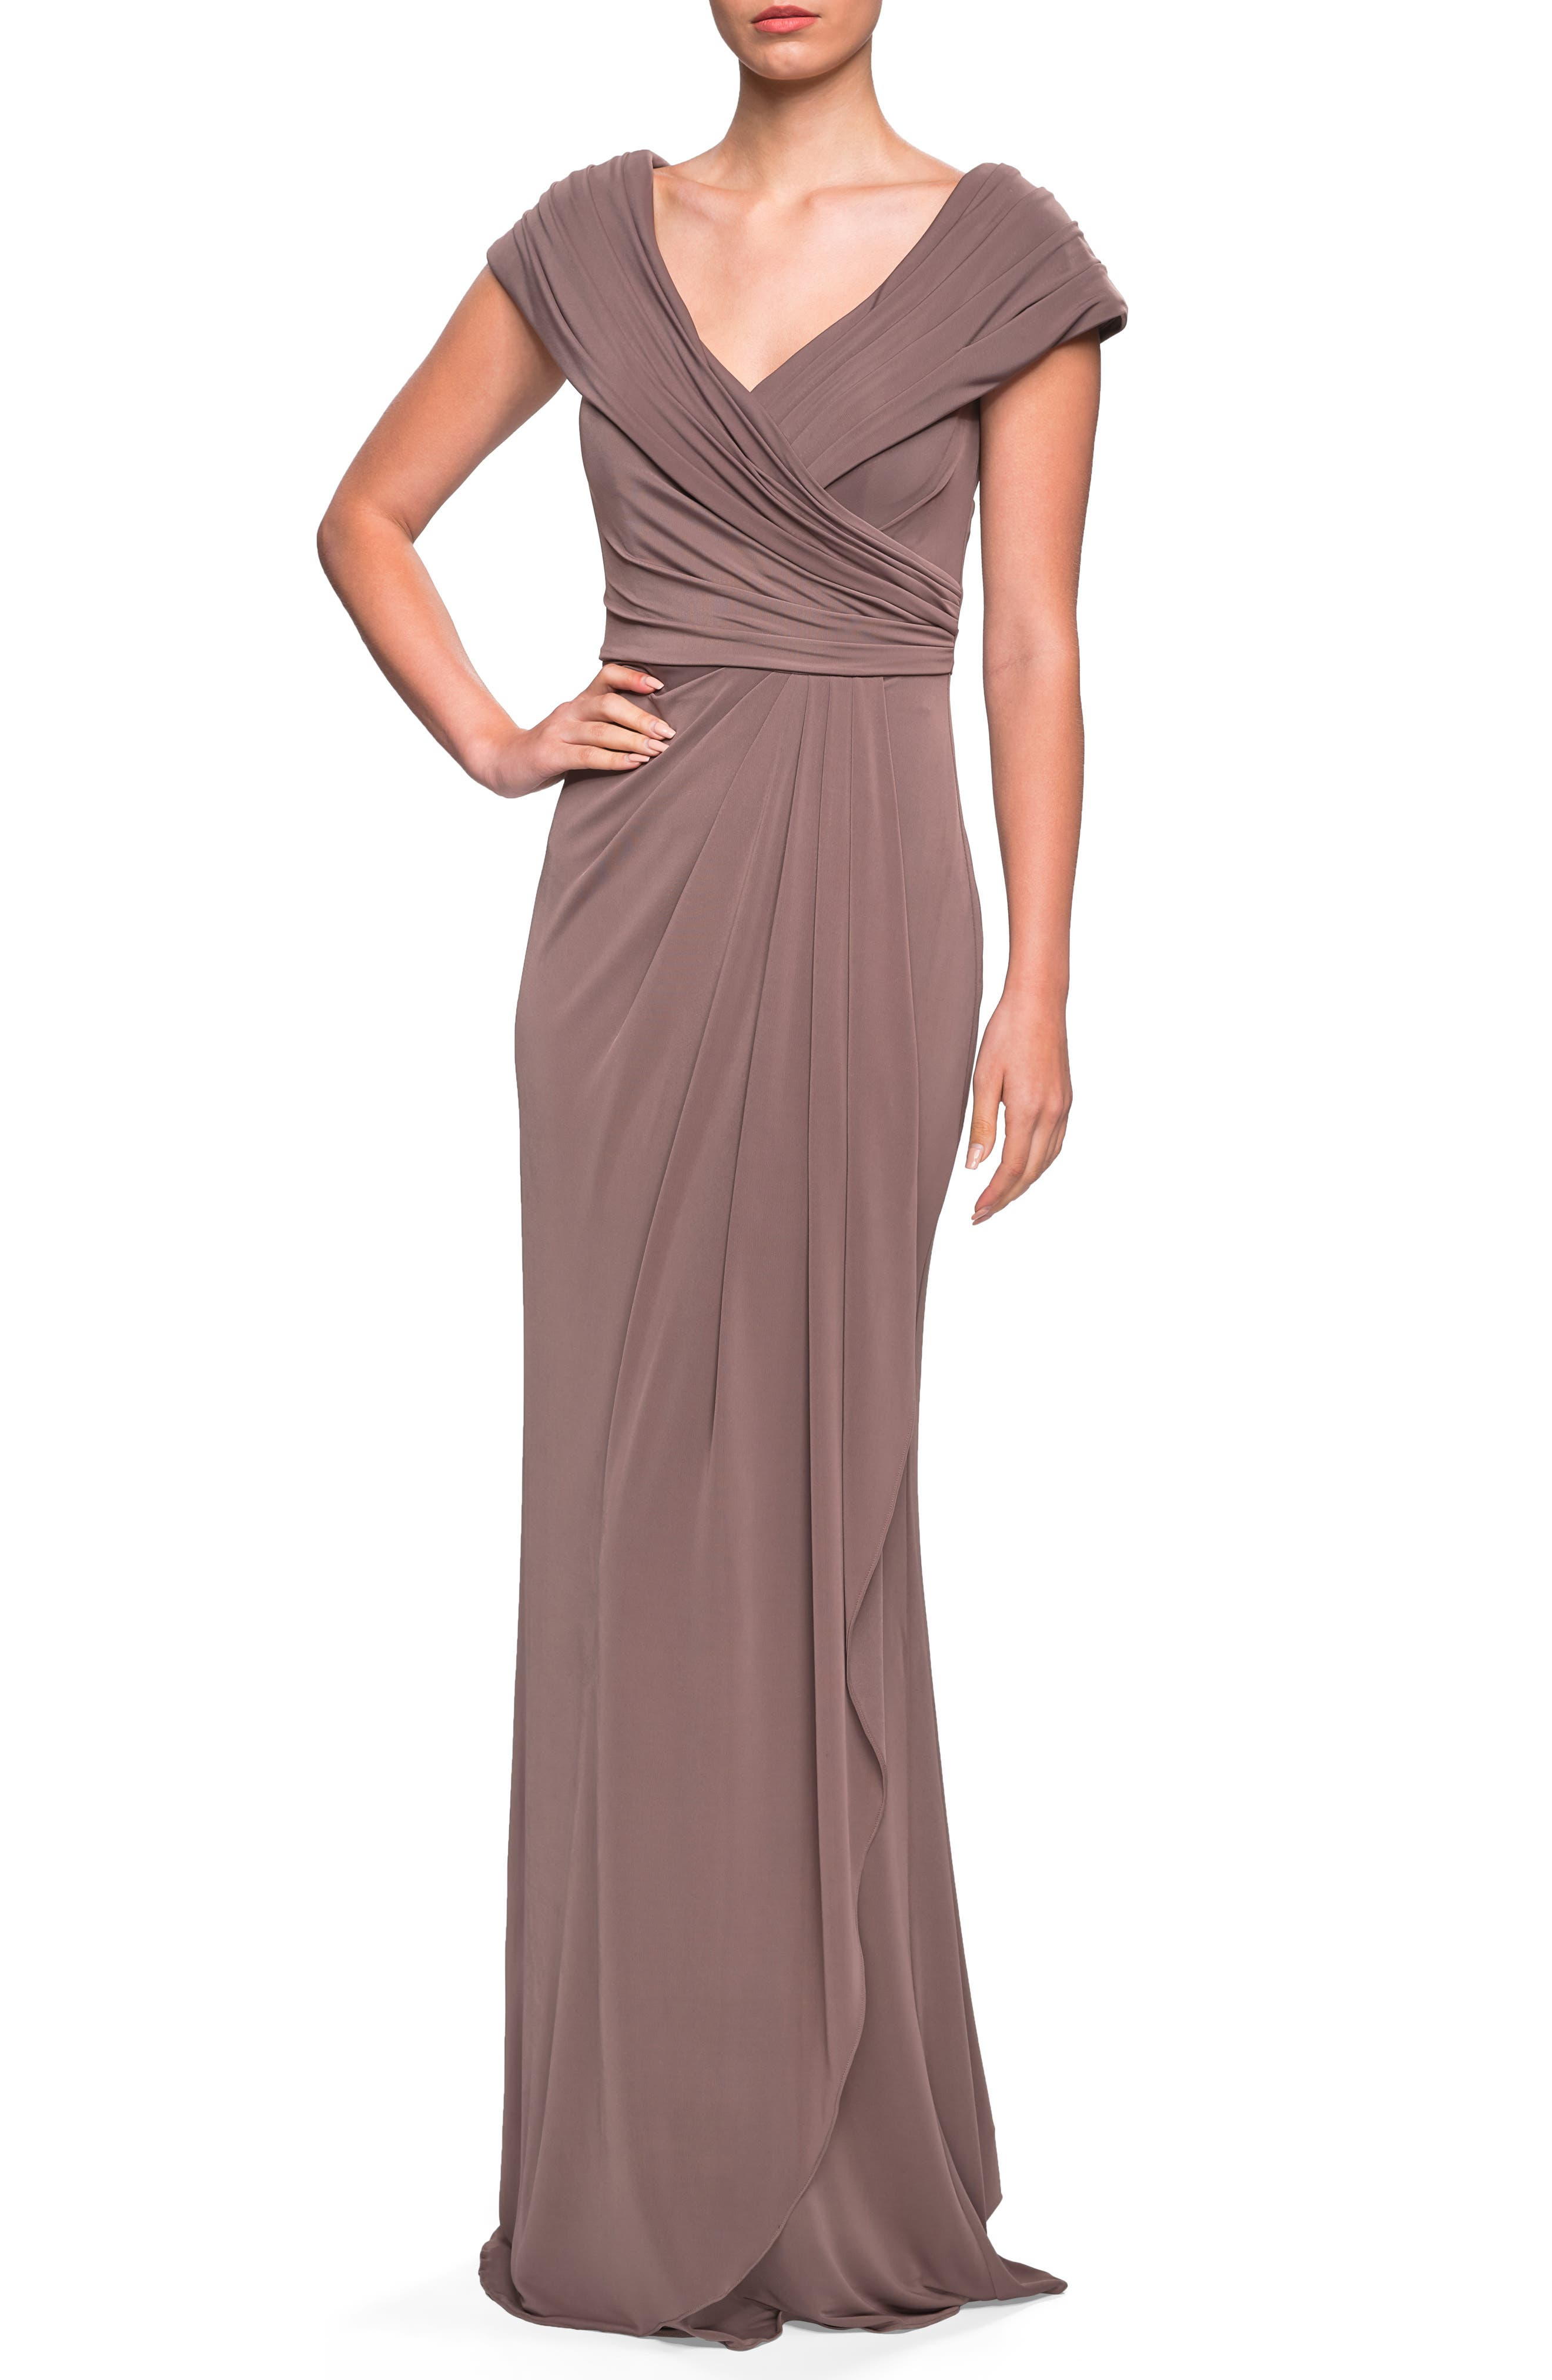 La Femme Ruched Jersey Gown, Beige